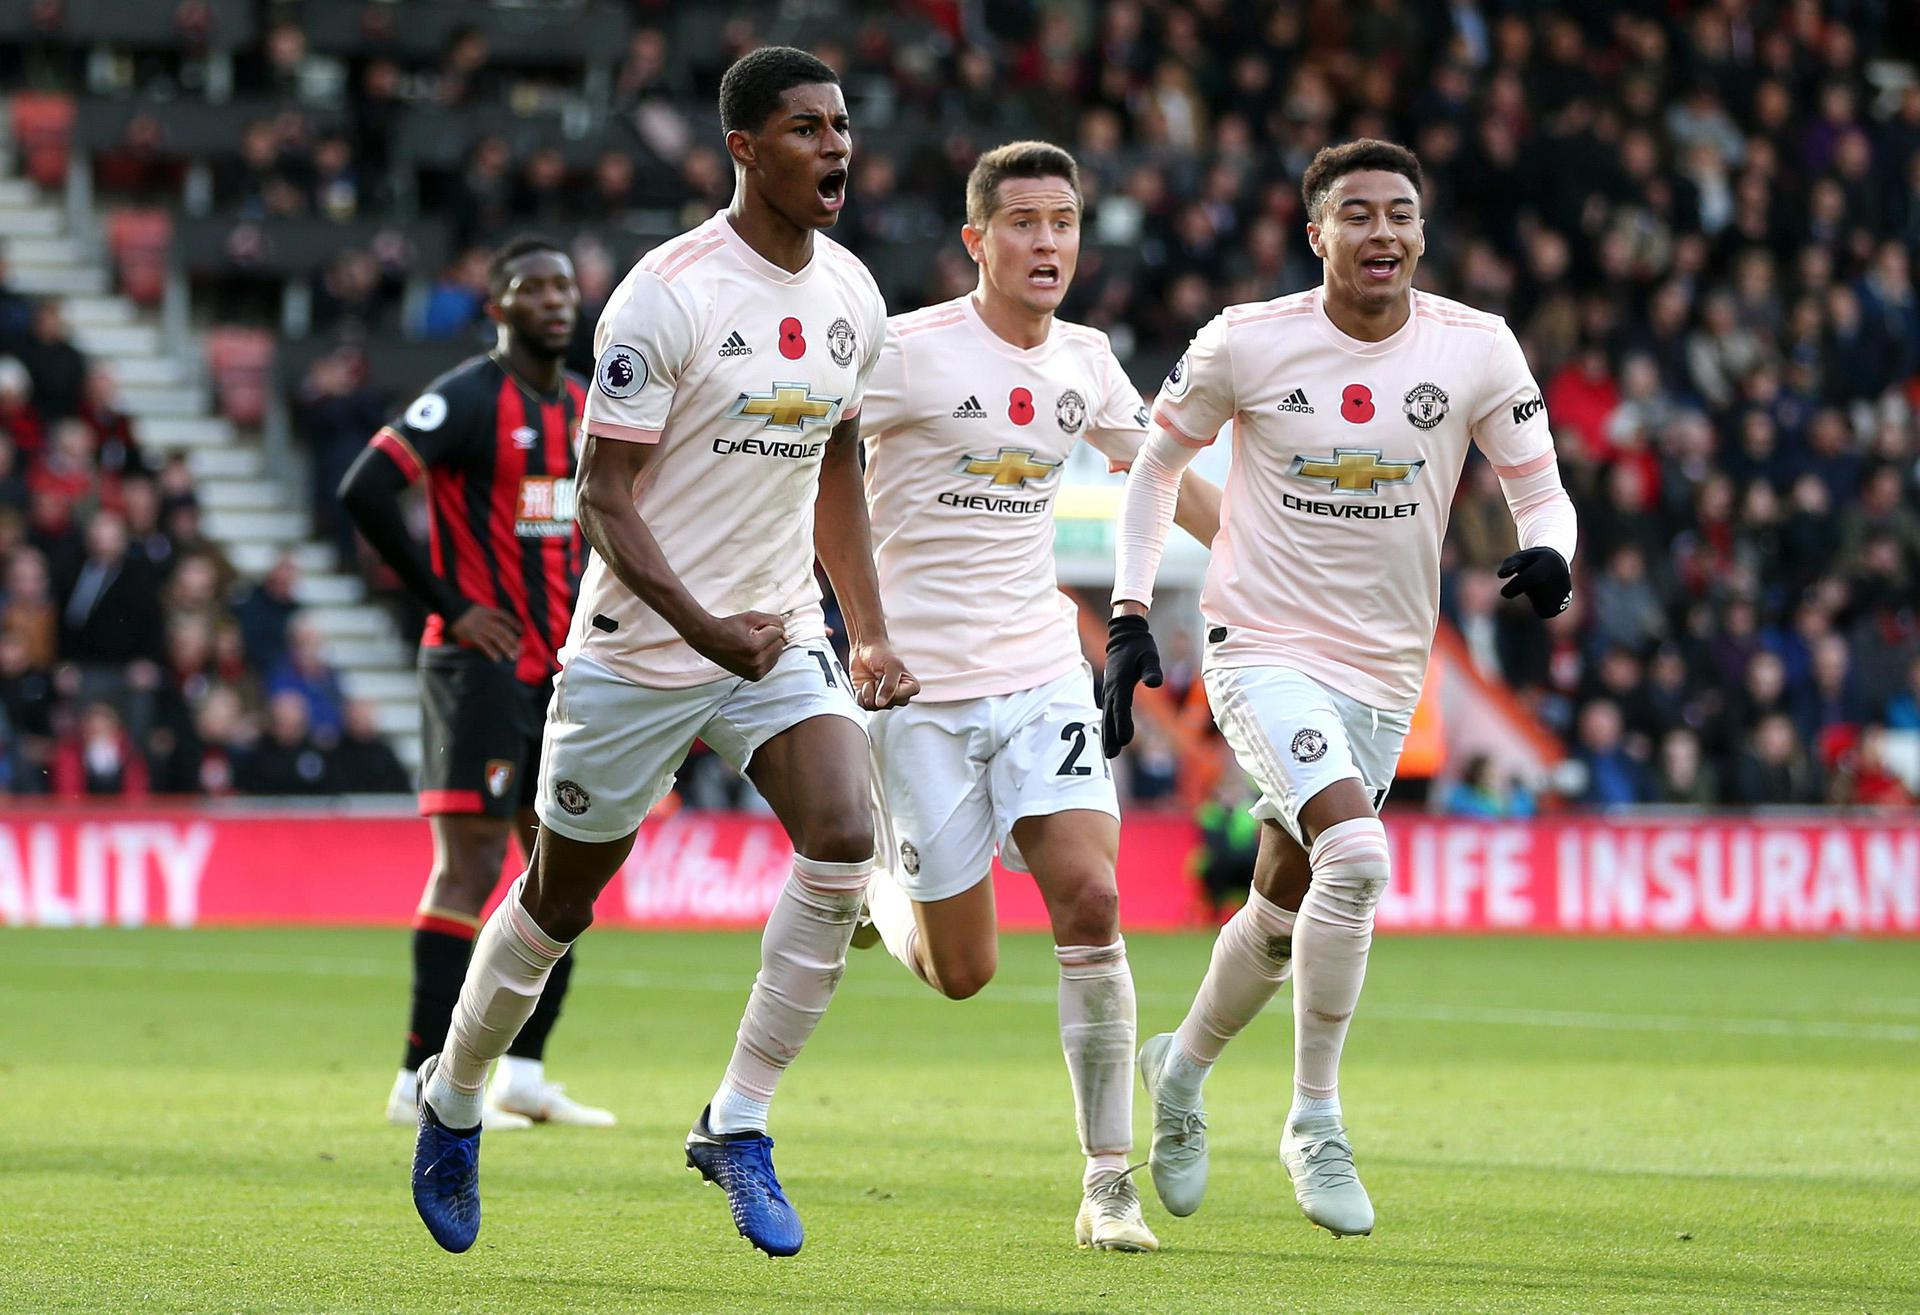 Marcus Rashford celebrates his winning goal at Bournemouth with Ander Herrera and Jesse Lingard